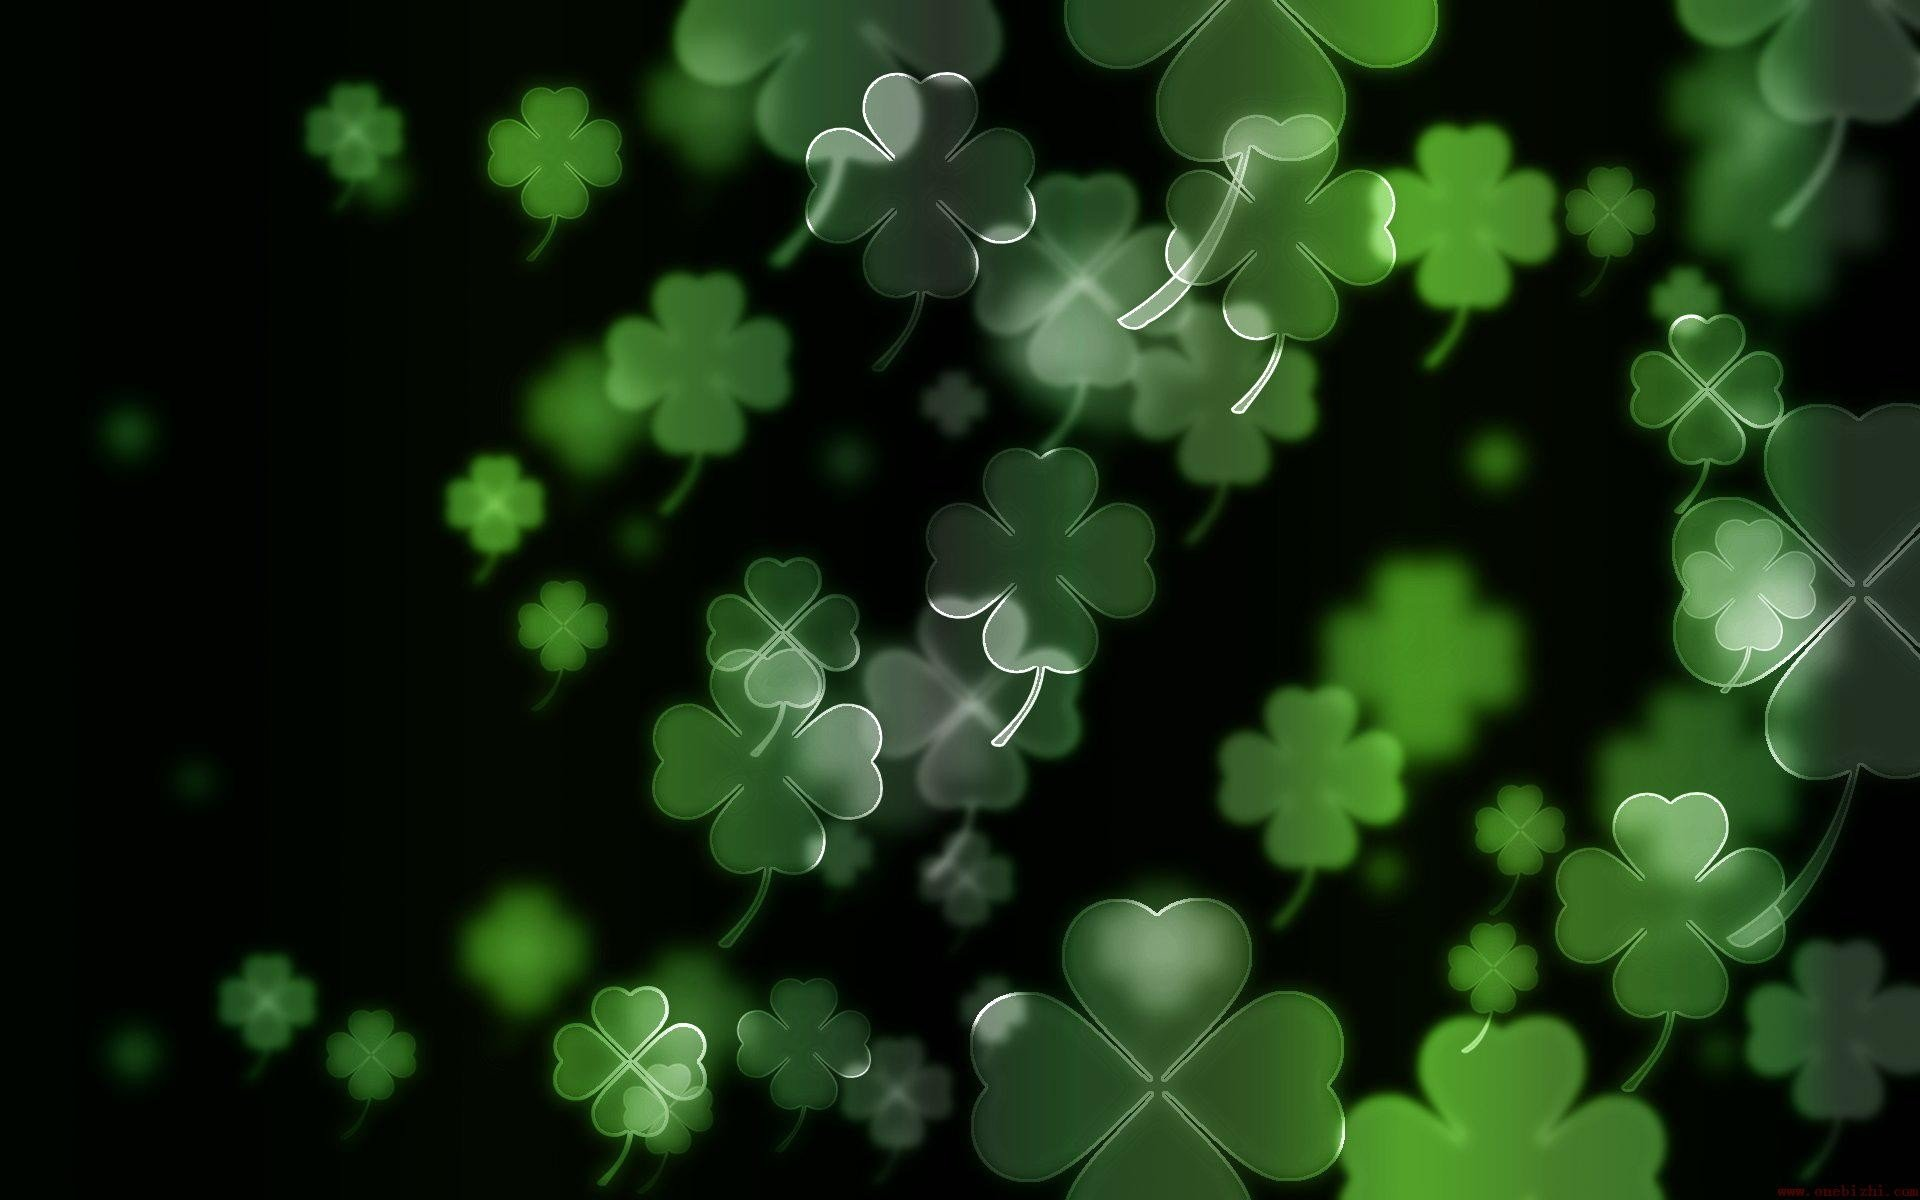 luck irish four leaf clover Clovers wallpaper background 1920x1200